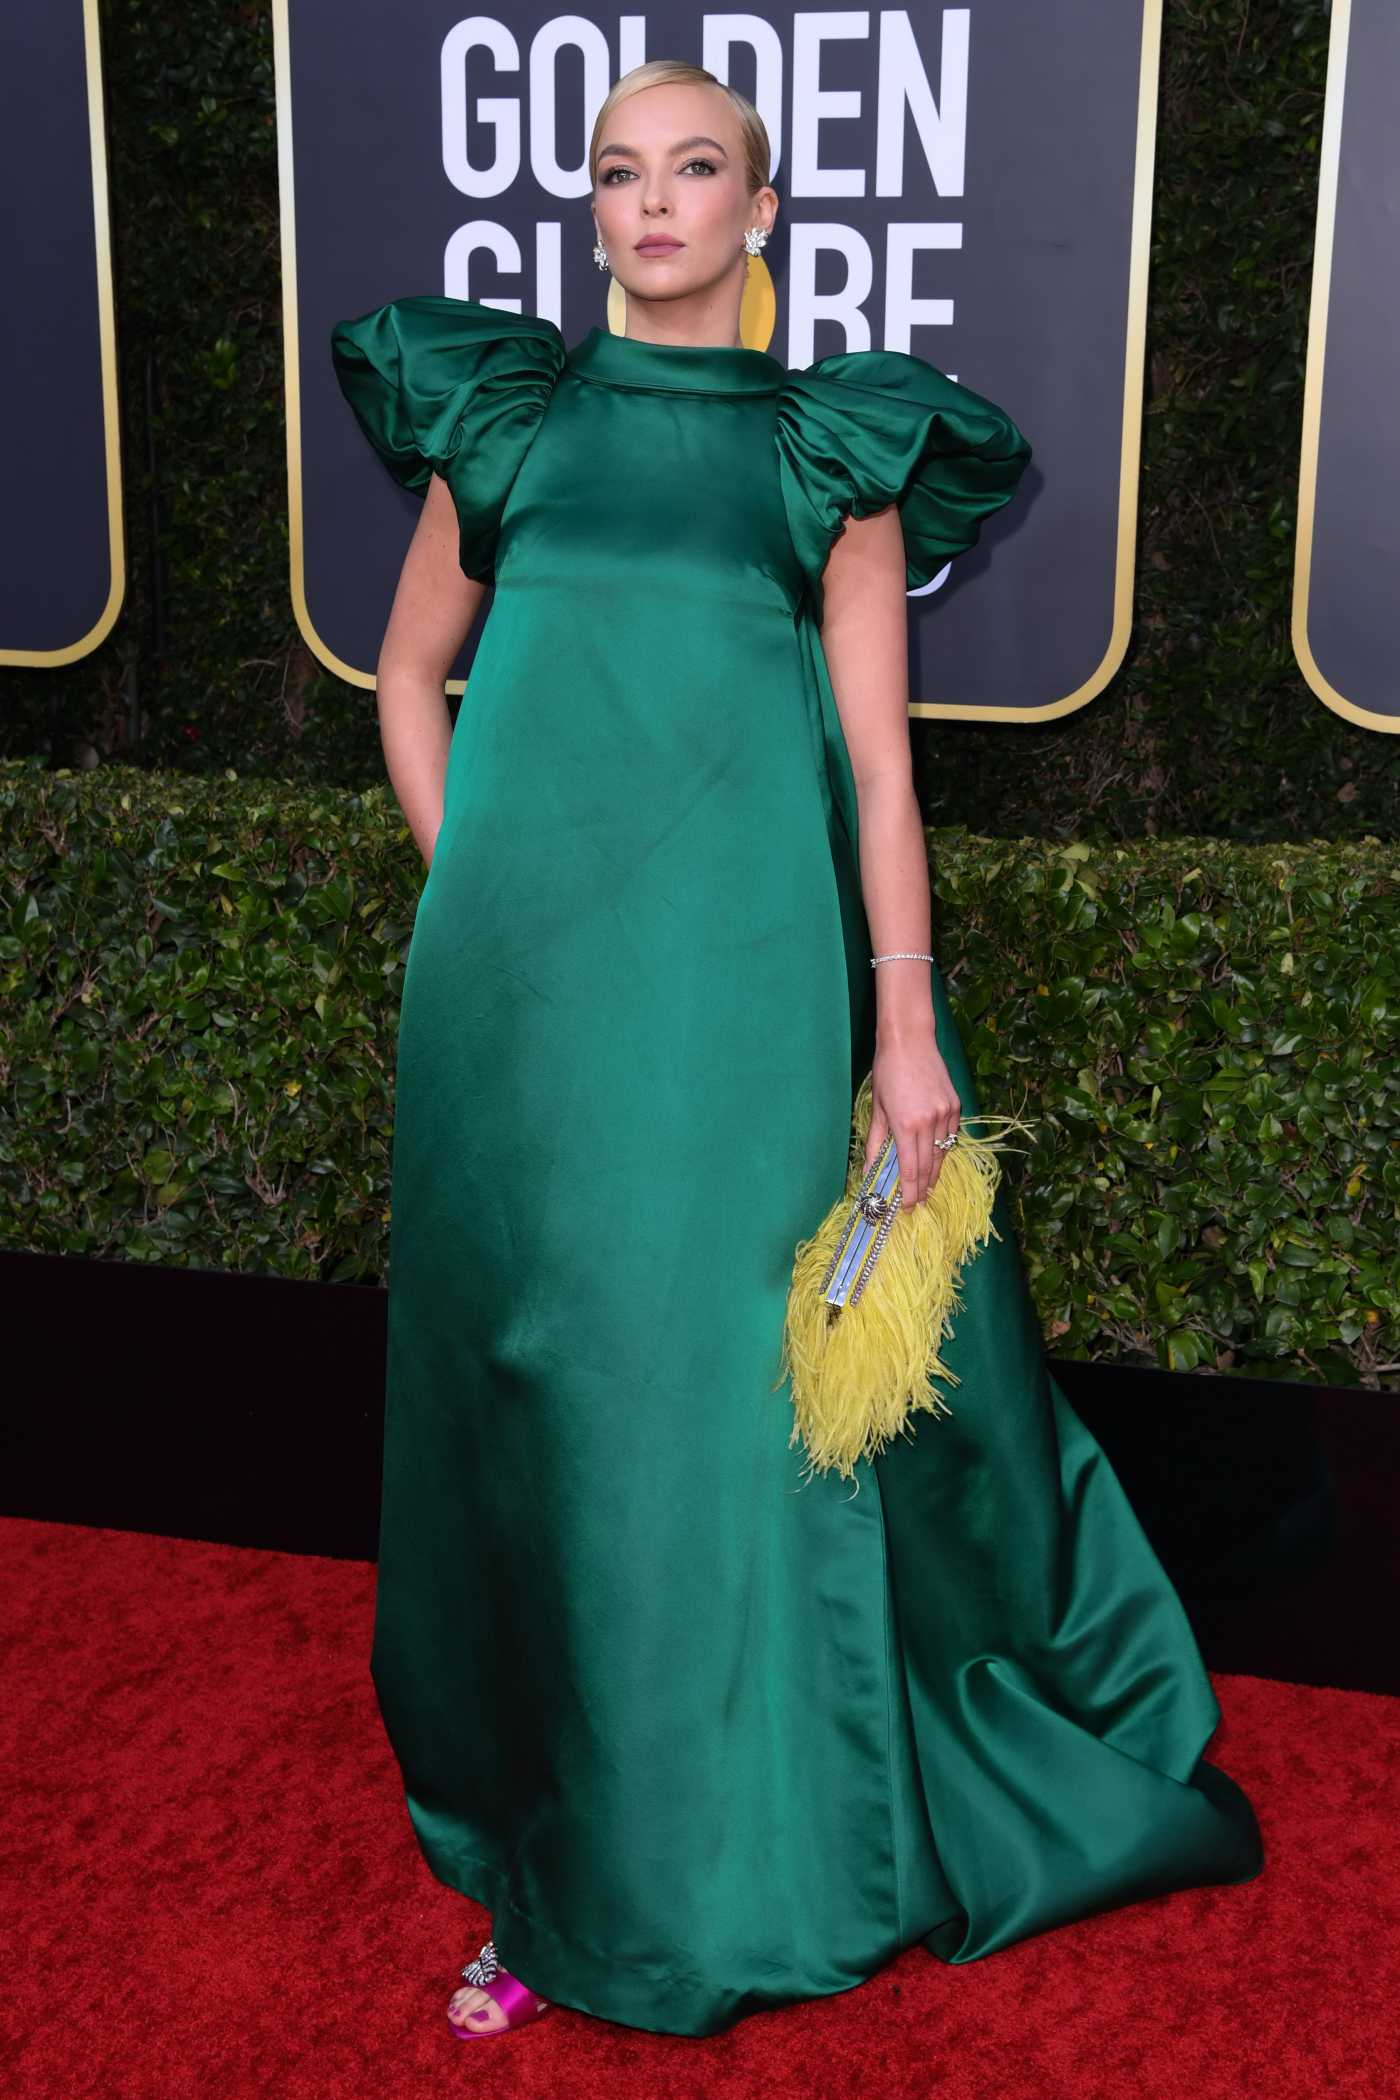 Jodie Comer Attends the 77th Annual Golden Globe Awards at the Beverly Hilton Hotel in Beverly Hills 01/05/2020